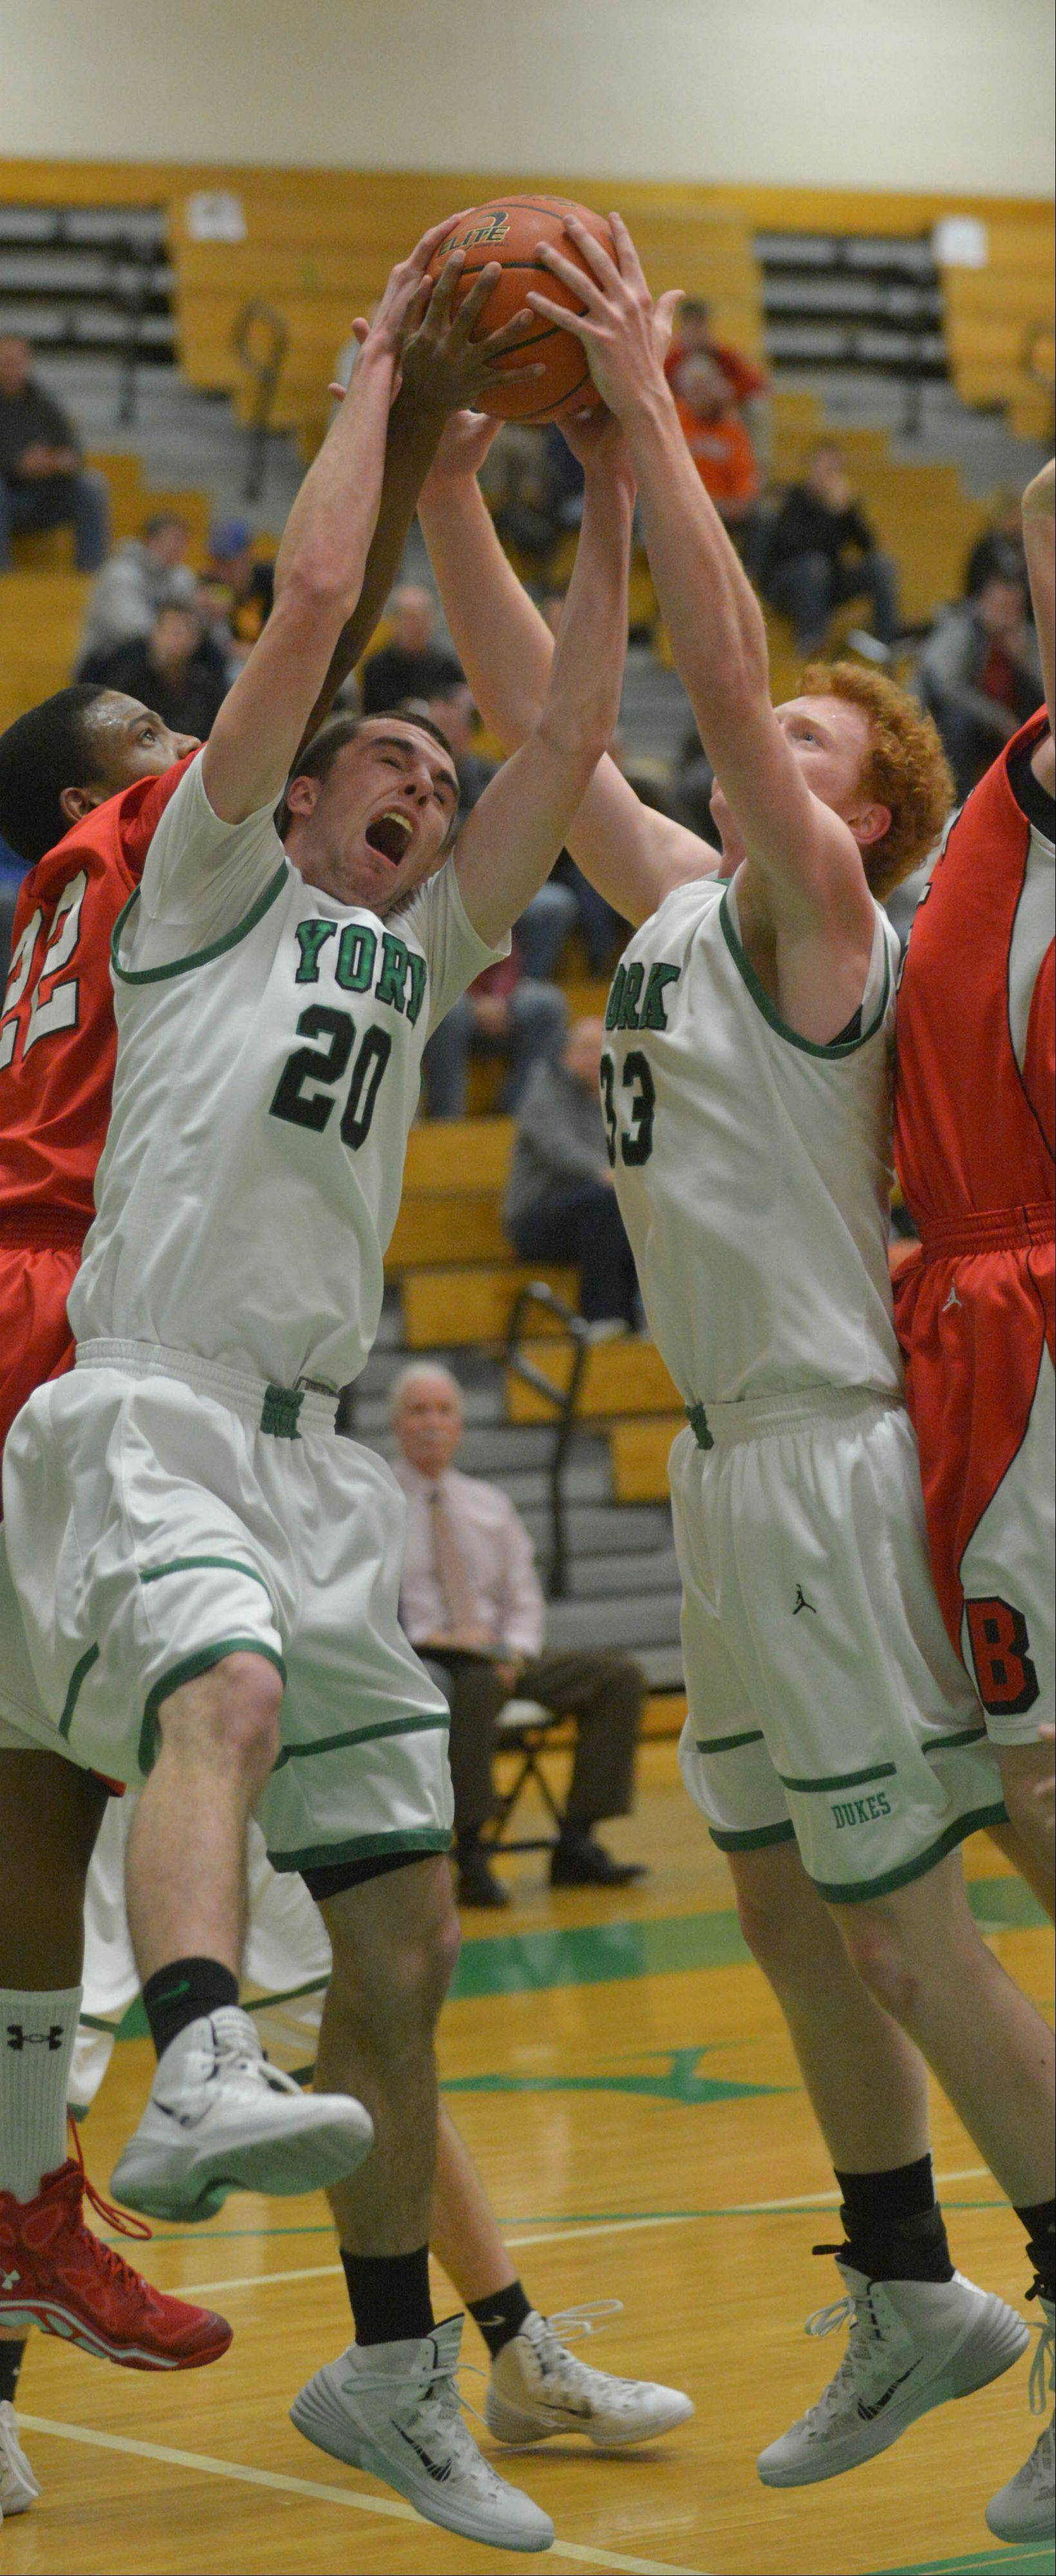 Images: Benet at York boys basketball